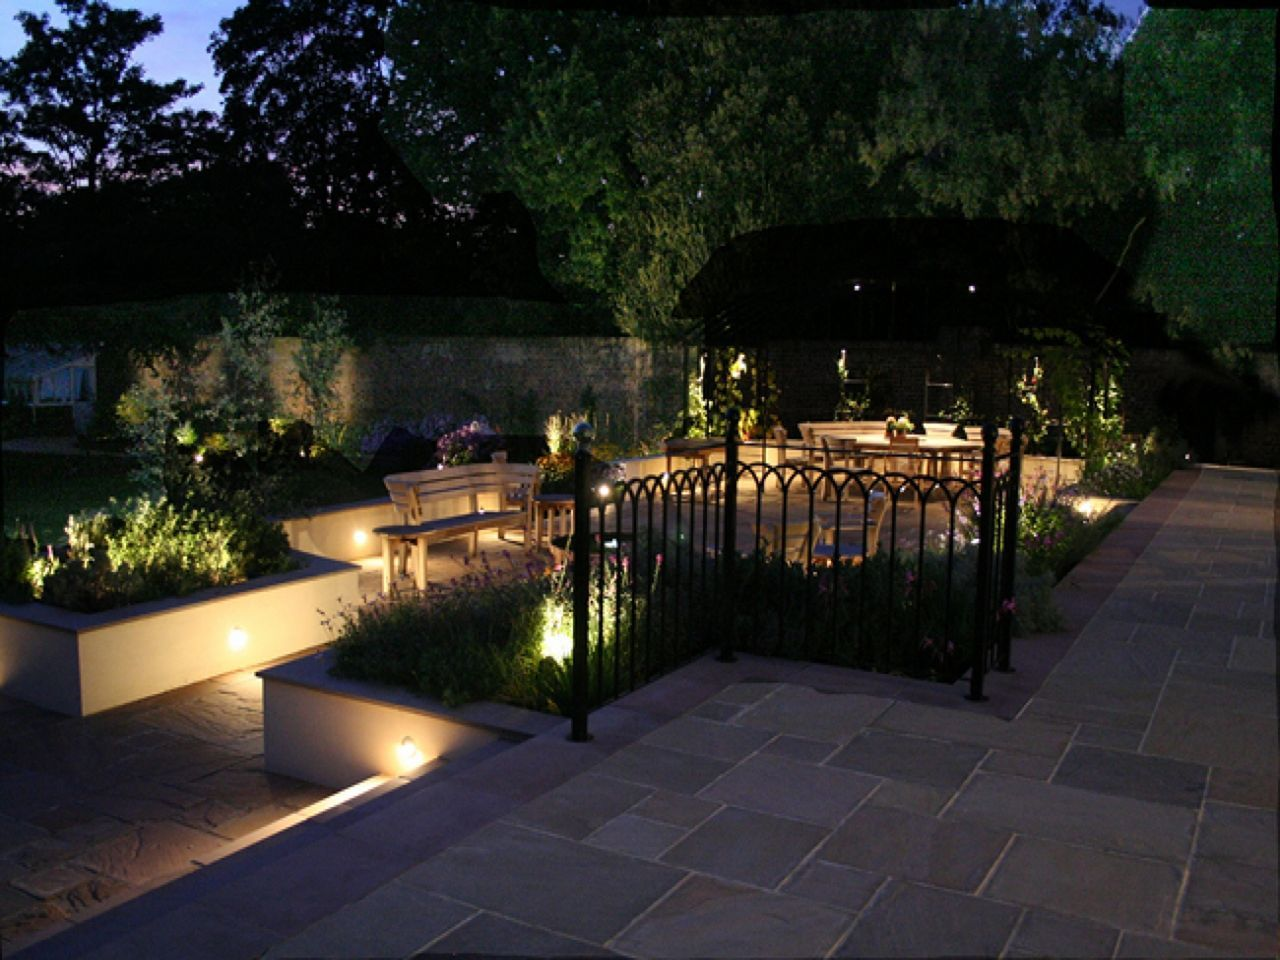 Garden Lighting Design Ideas 0111 | Garden Ideas | Pinterest on garden outdoor design, garden landscape design, garden design ideas, garden painting design, garden stage design, garden graphic design, garden tile design, garden bathroom design, garden beds design, garden interior design, garden catering, garden layout design, garden floor design, garden art design, garden color design, garden logos design, garden architecture design, garden home design, garden benches design, garden set design,